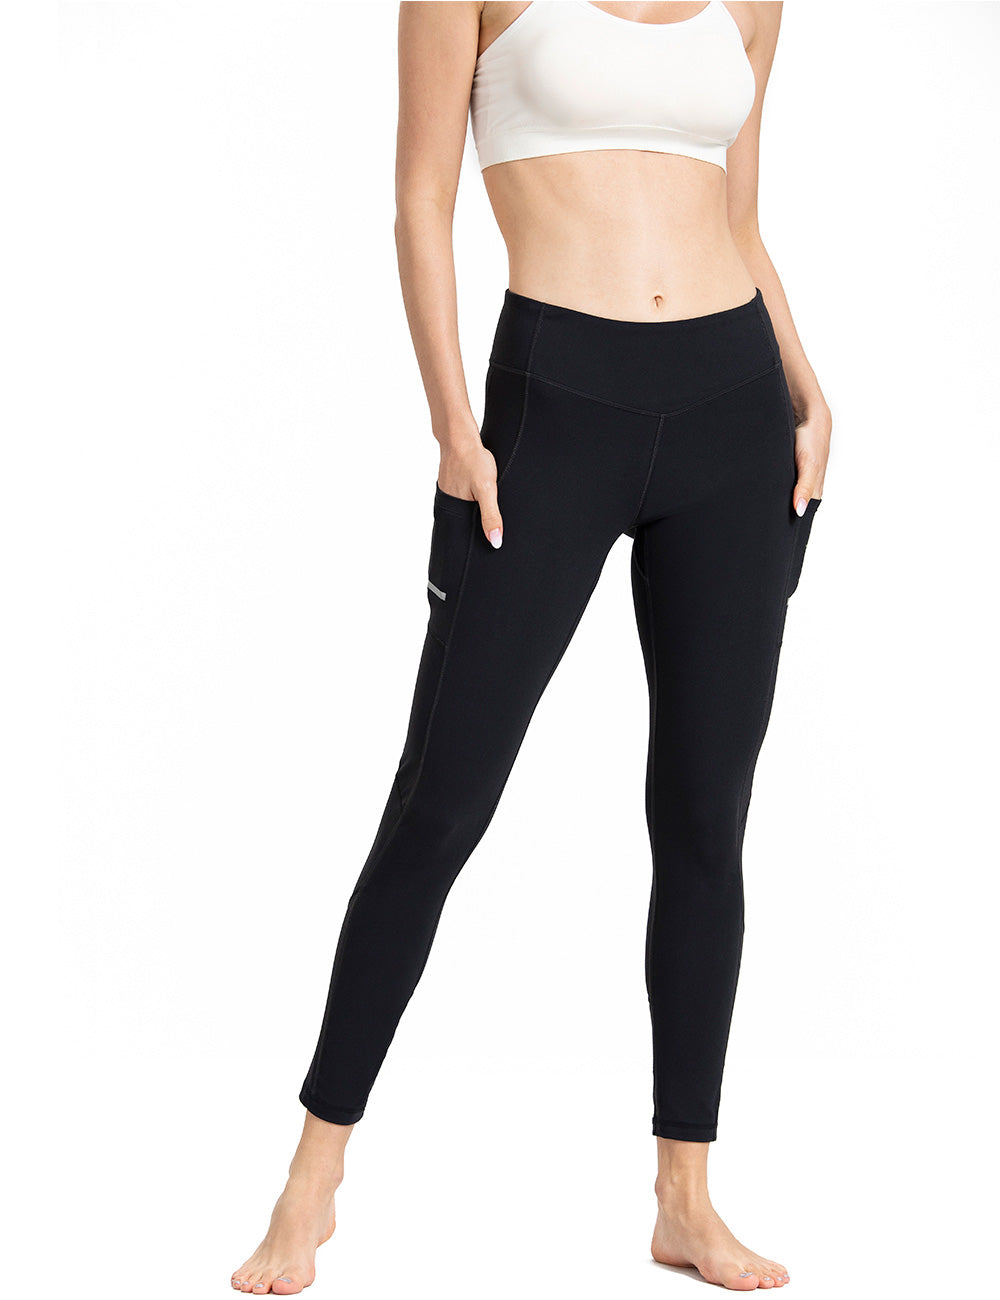 Skinny Yoga Pants - ALONGFIT